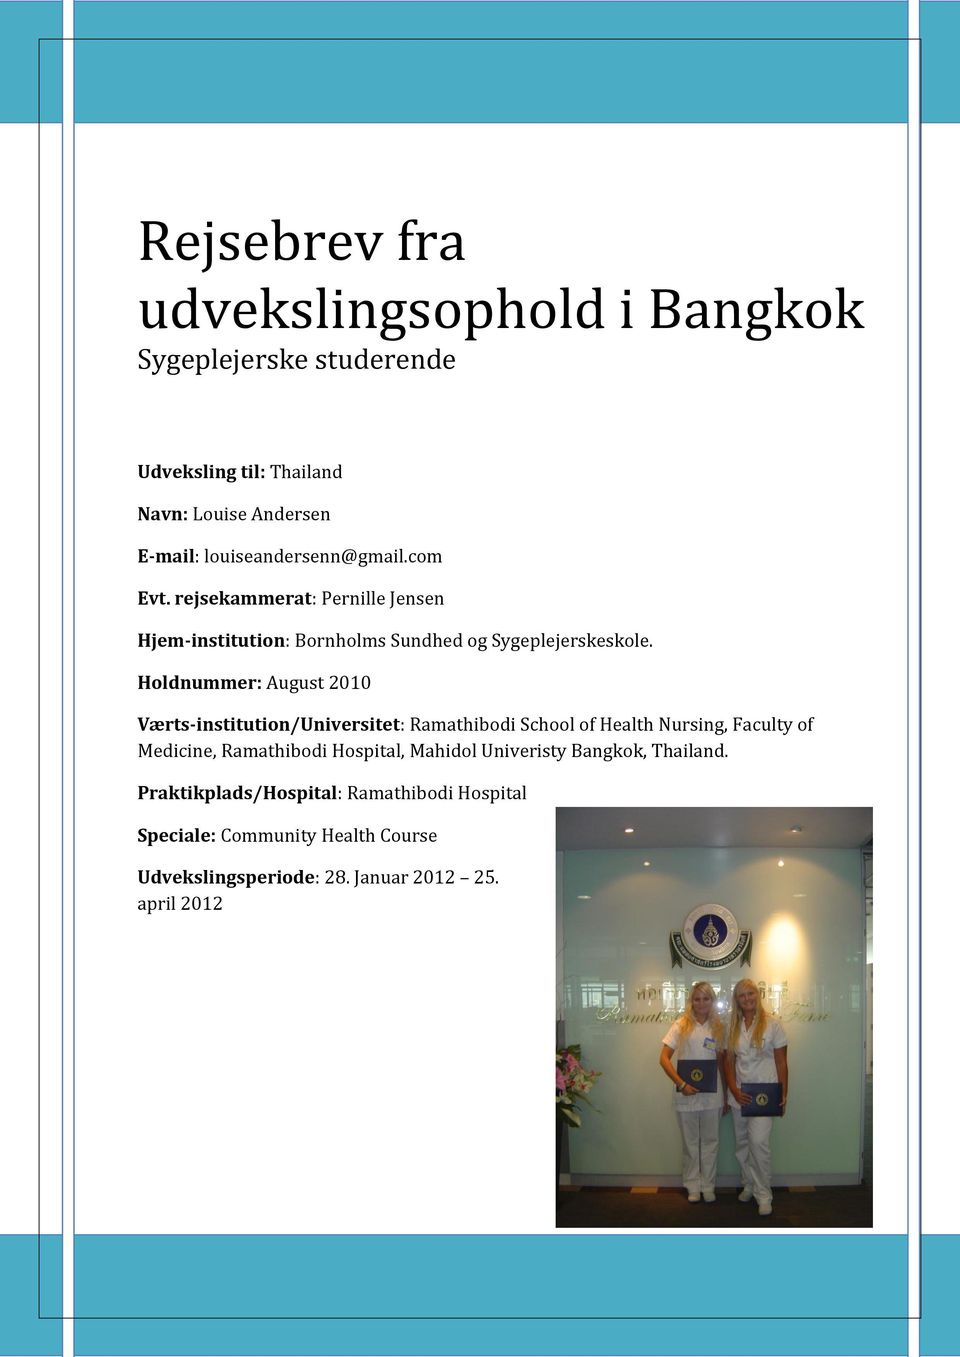 Holdnummer: August 2010 Værts-institution/Universitet: Ramathibodi School of Health Nursing, Faculty of Medicine, Ramathibodi Hospital,